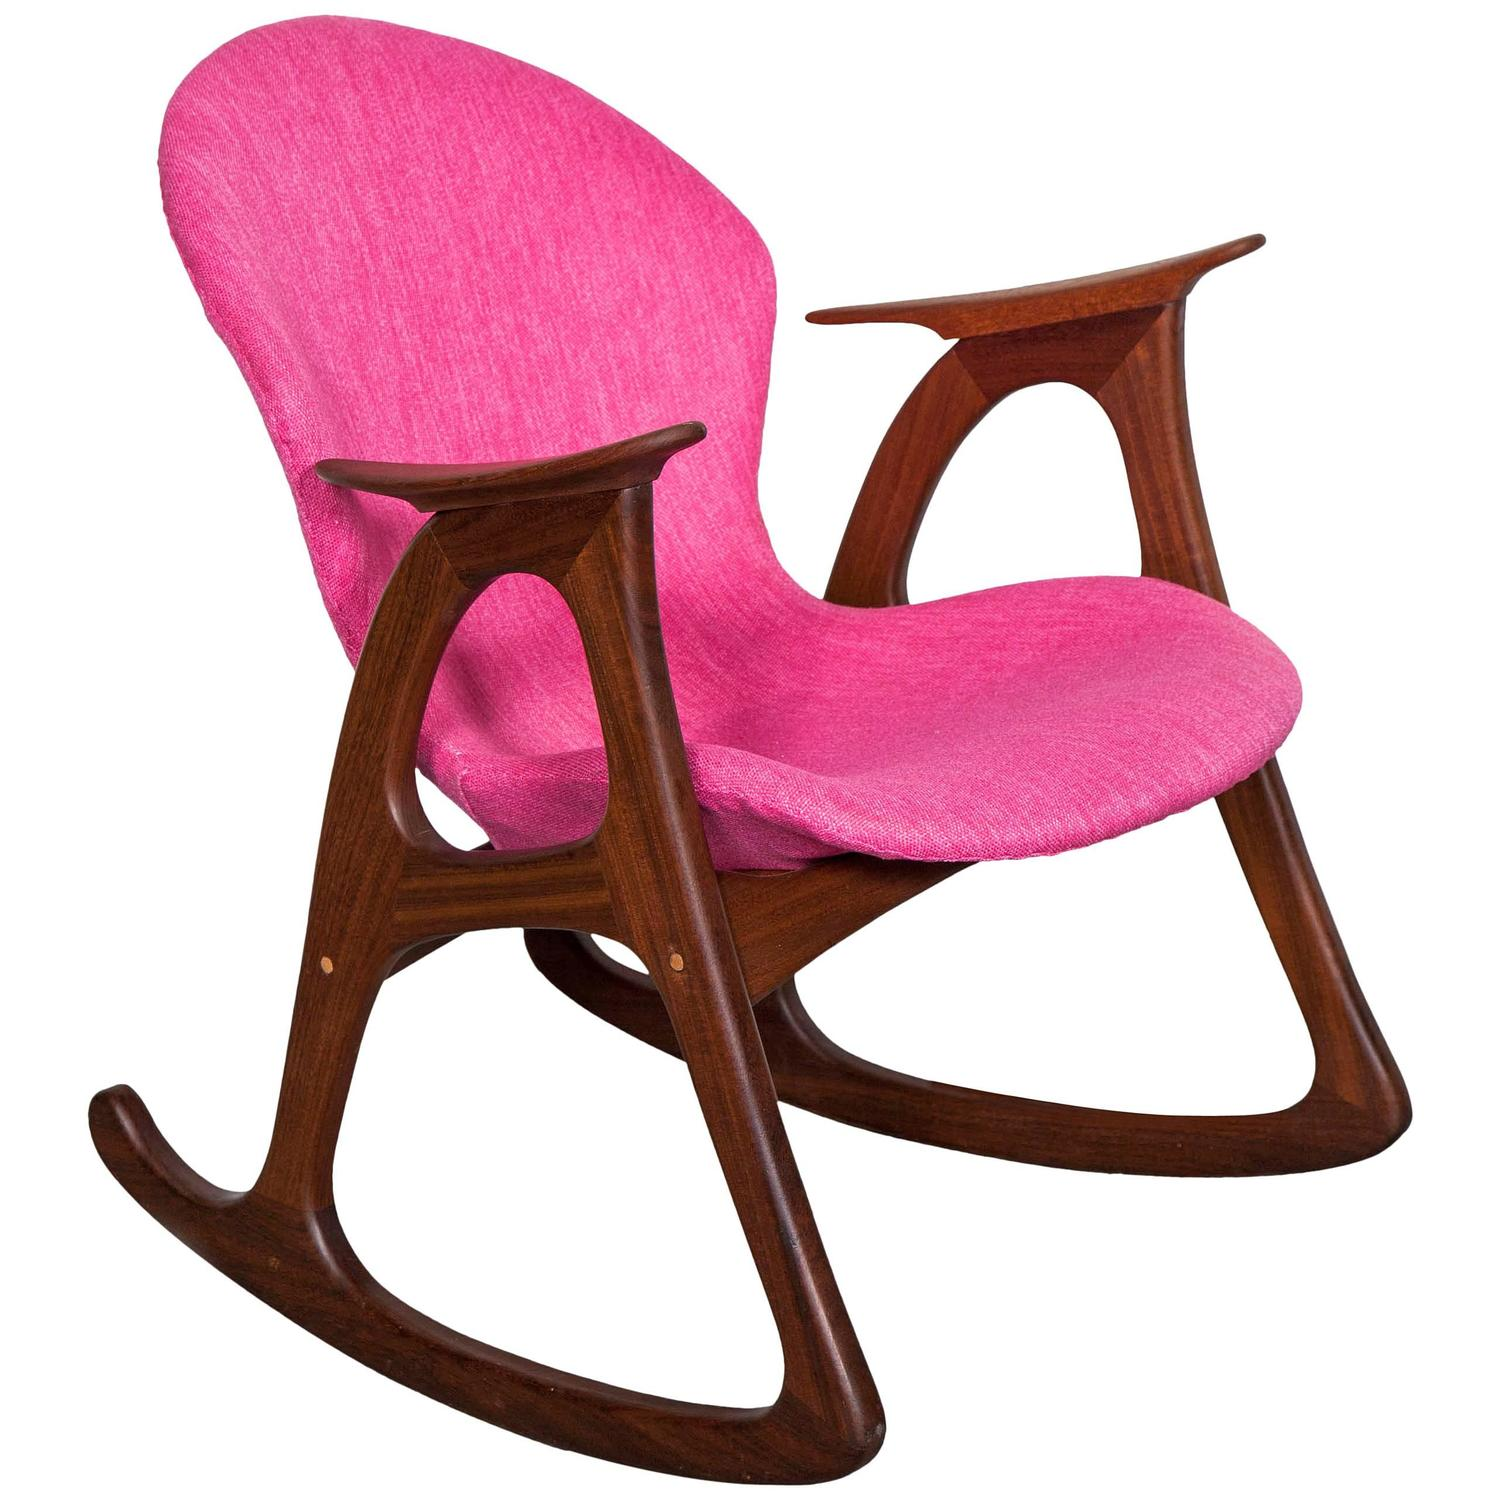 Charming Teak Rocking Chair By Aage Christiansen, Pink At 1stdibs